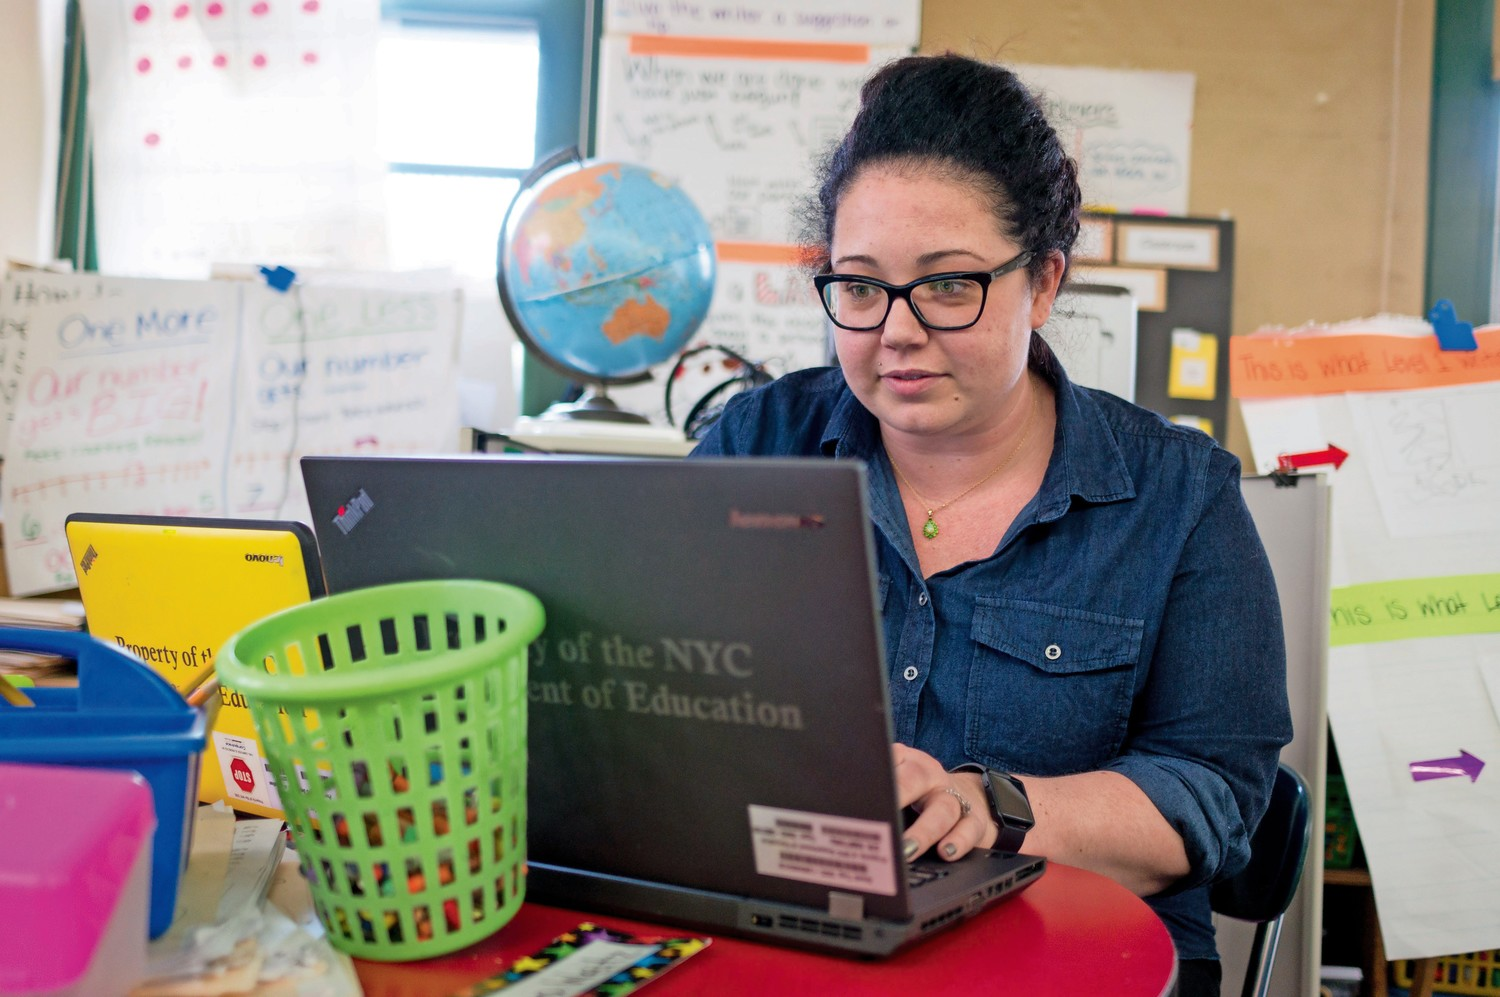 In addition to a smartboard, Elsa Gilheany, a kindergarten teacher at P.S. 24, uses laptops issued by the New York City Dept. of Education as part of her lessons.